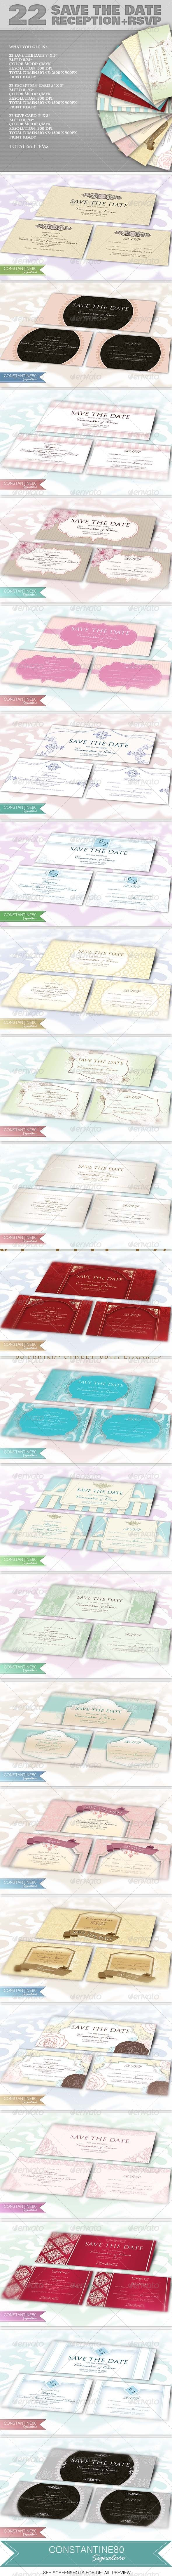 22 Save The Date Sets - Weddings Cards & Invites